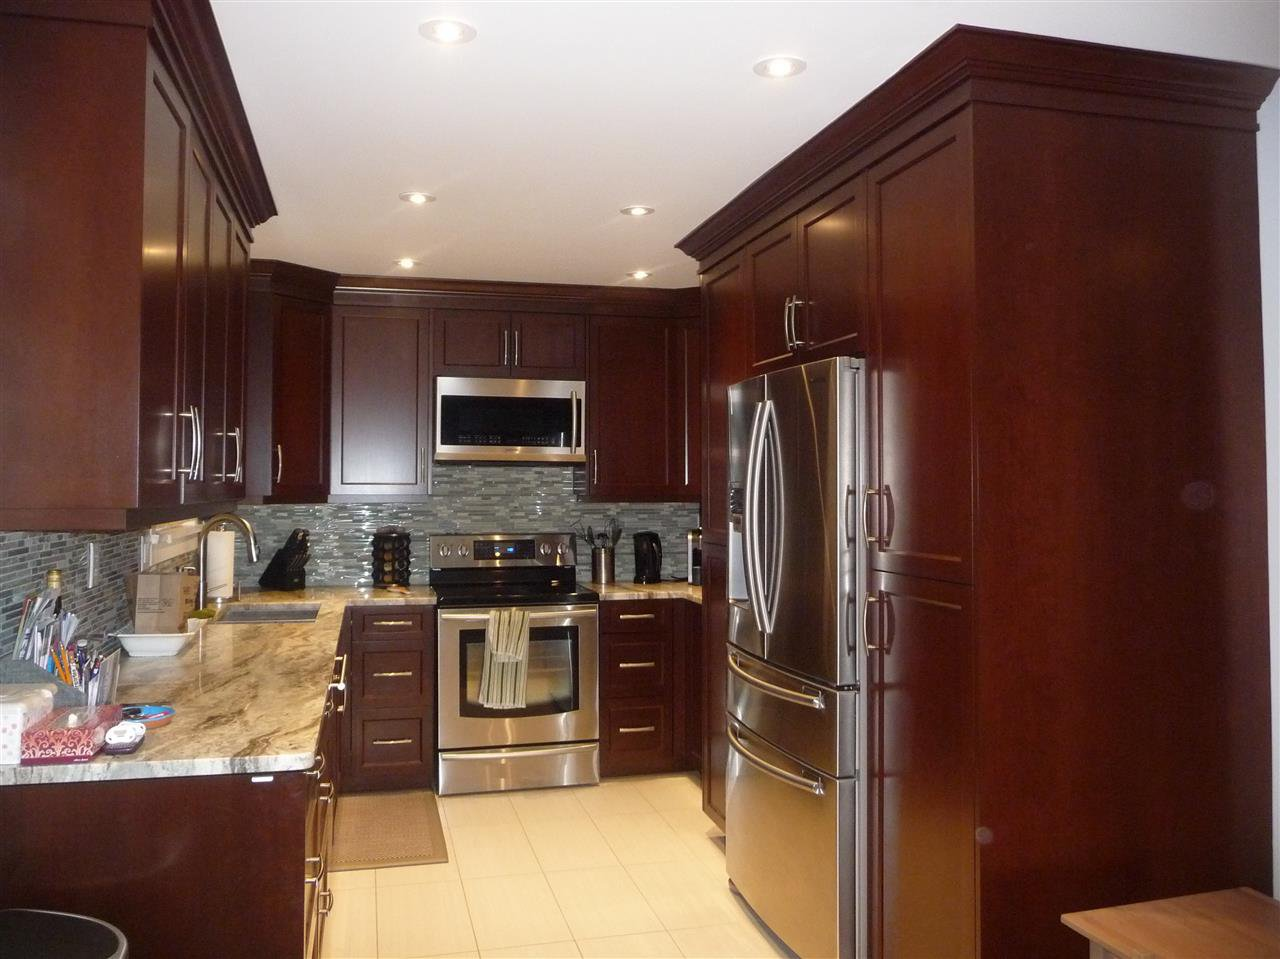 Photo 4: Photos: 8675 151B Street in Surrey: Bear Creek Green Timbers House for sale : MLS®# R2036956